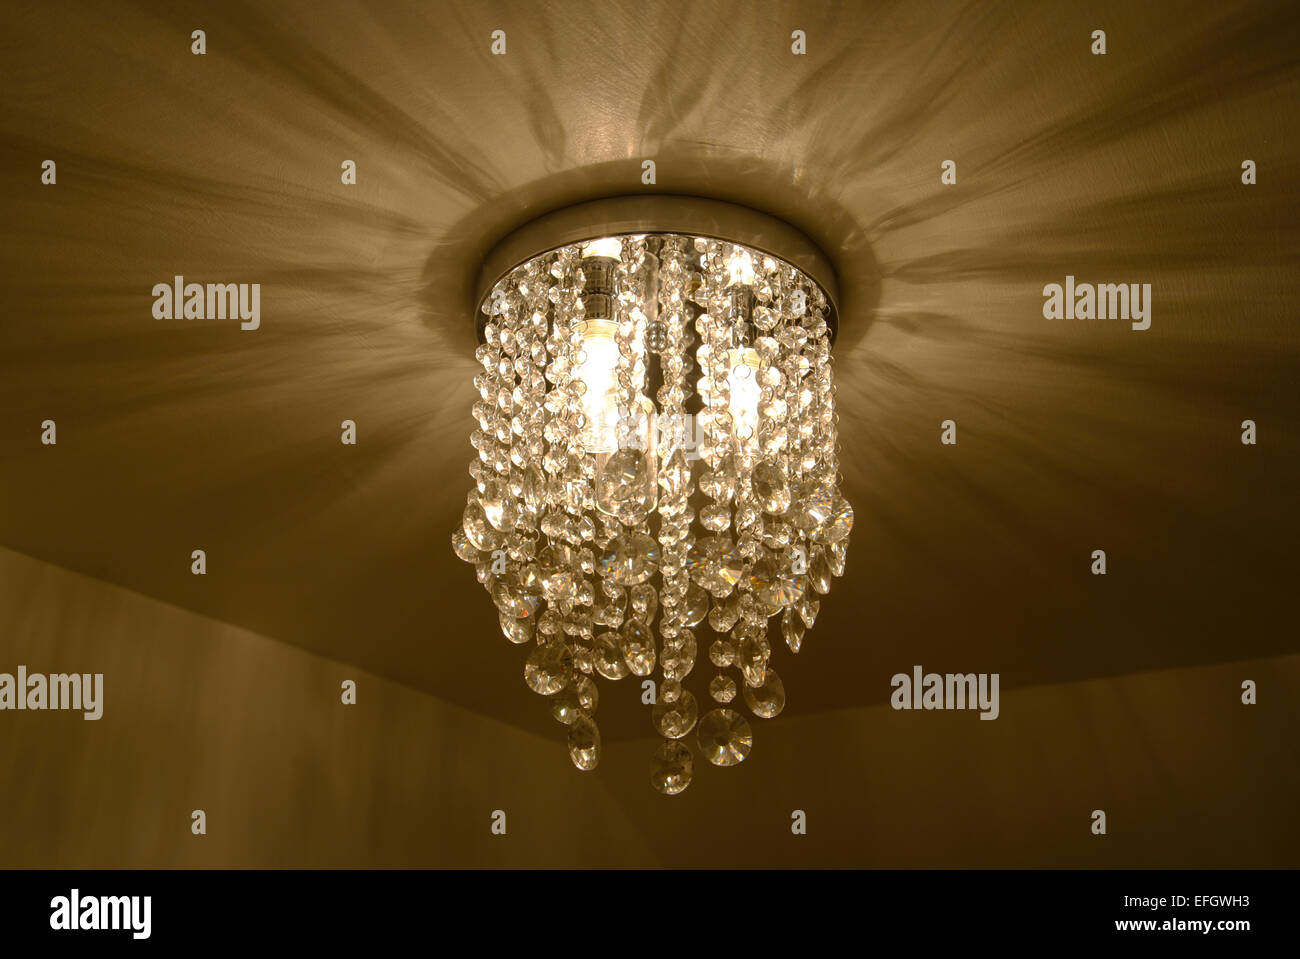 chandelier light fitting abstract pattern - Stock Image